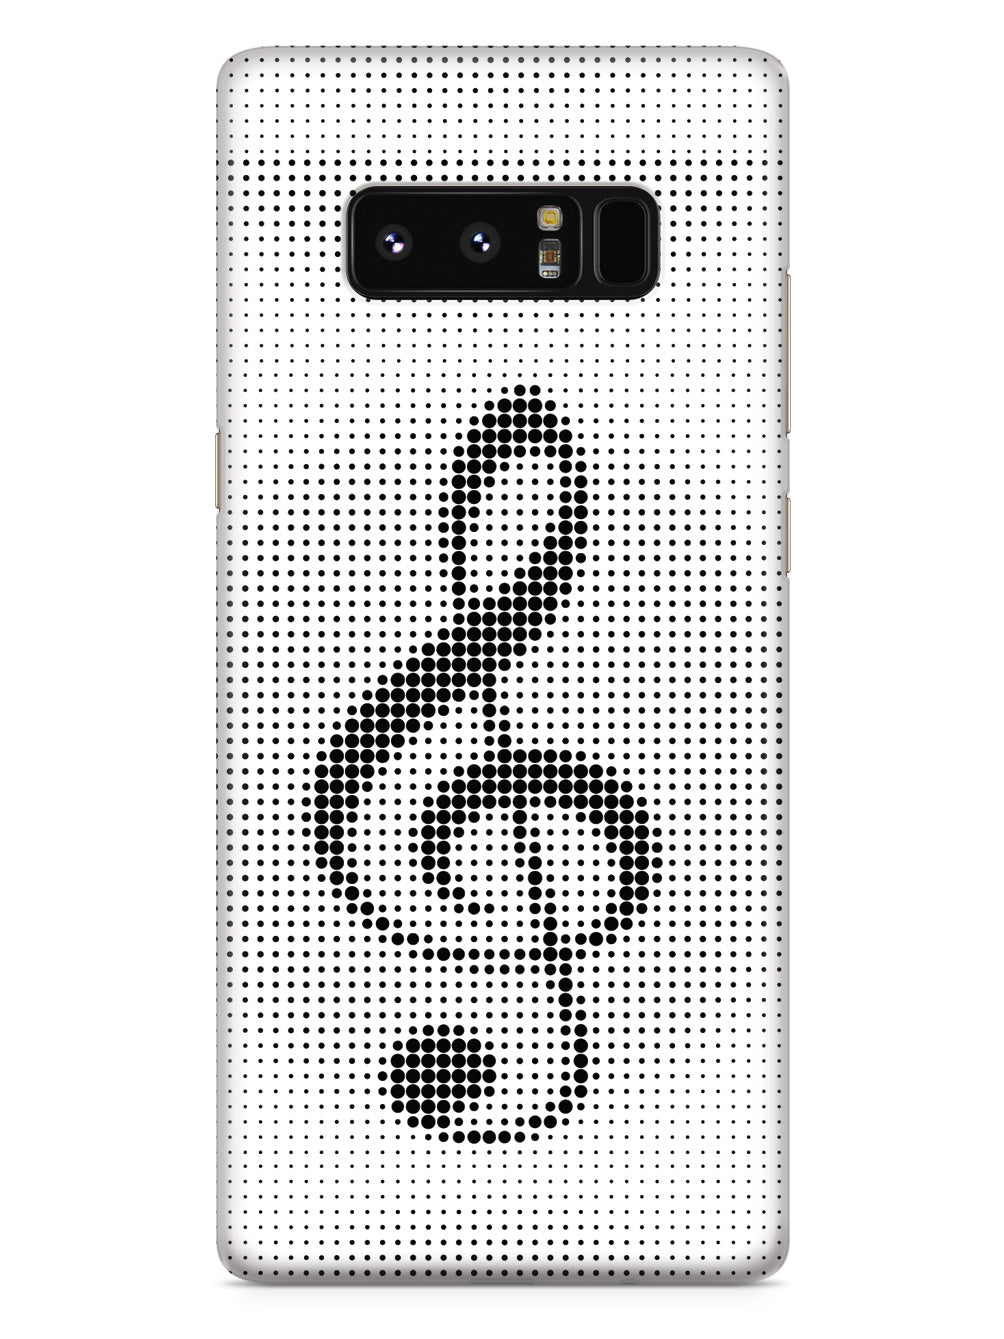 Treble Clef Polka Dots - White Case